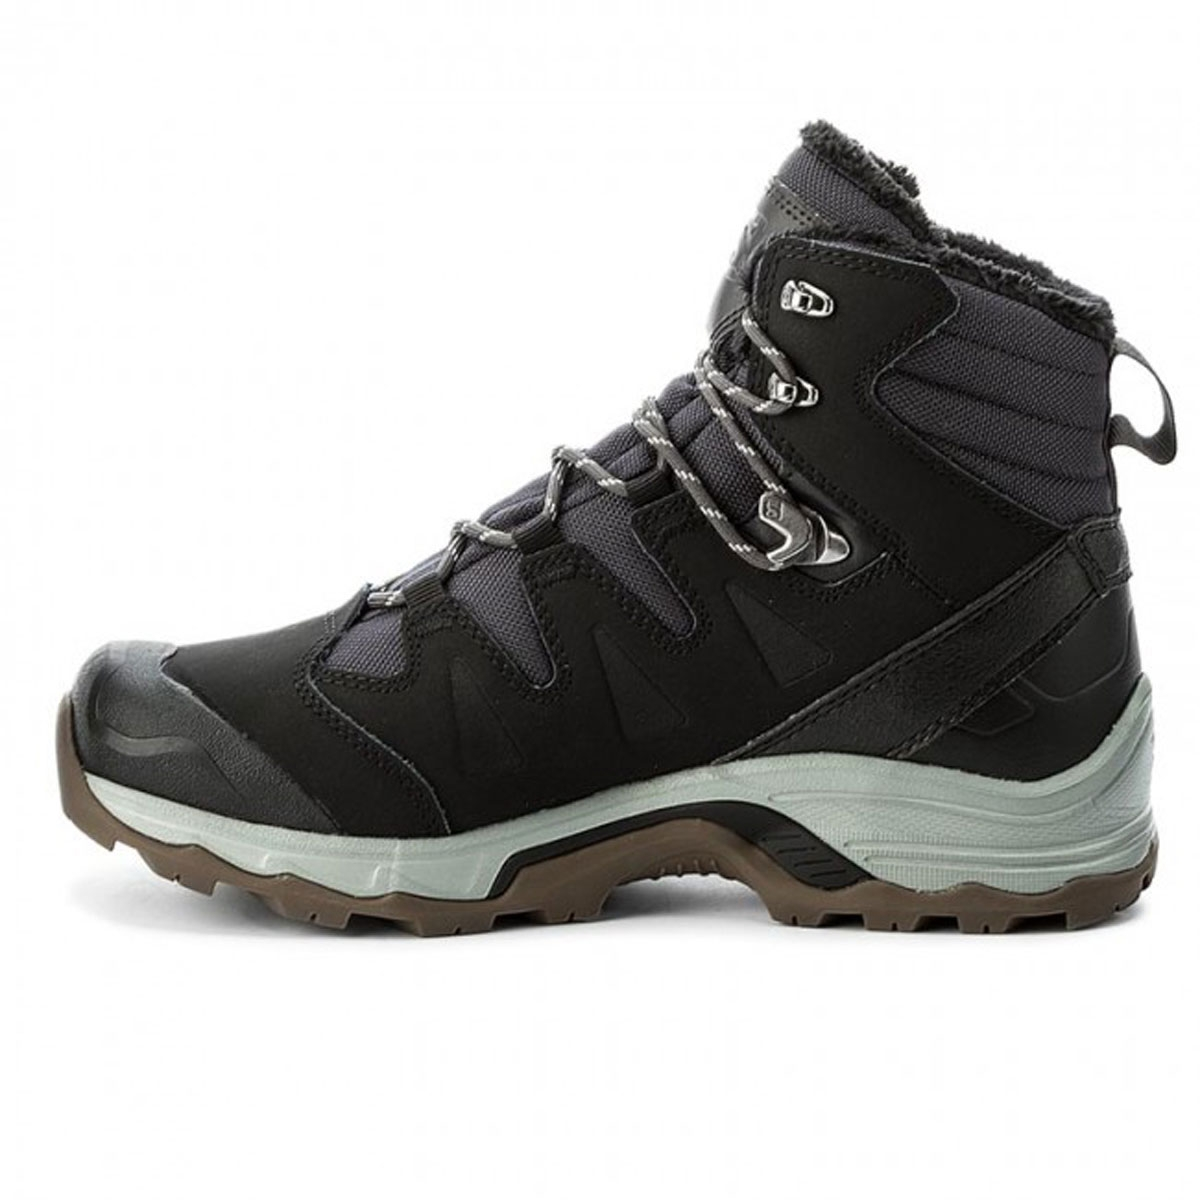 3af6348f57b Salomon Quest Winter GTX Walking Boots (Men's) - Phantom/Black/Vapor Blue